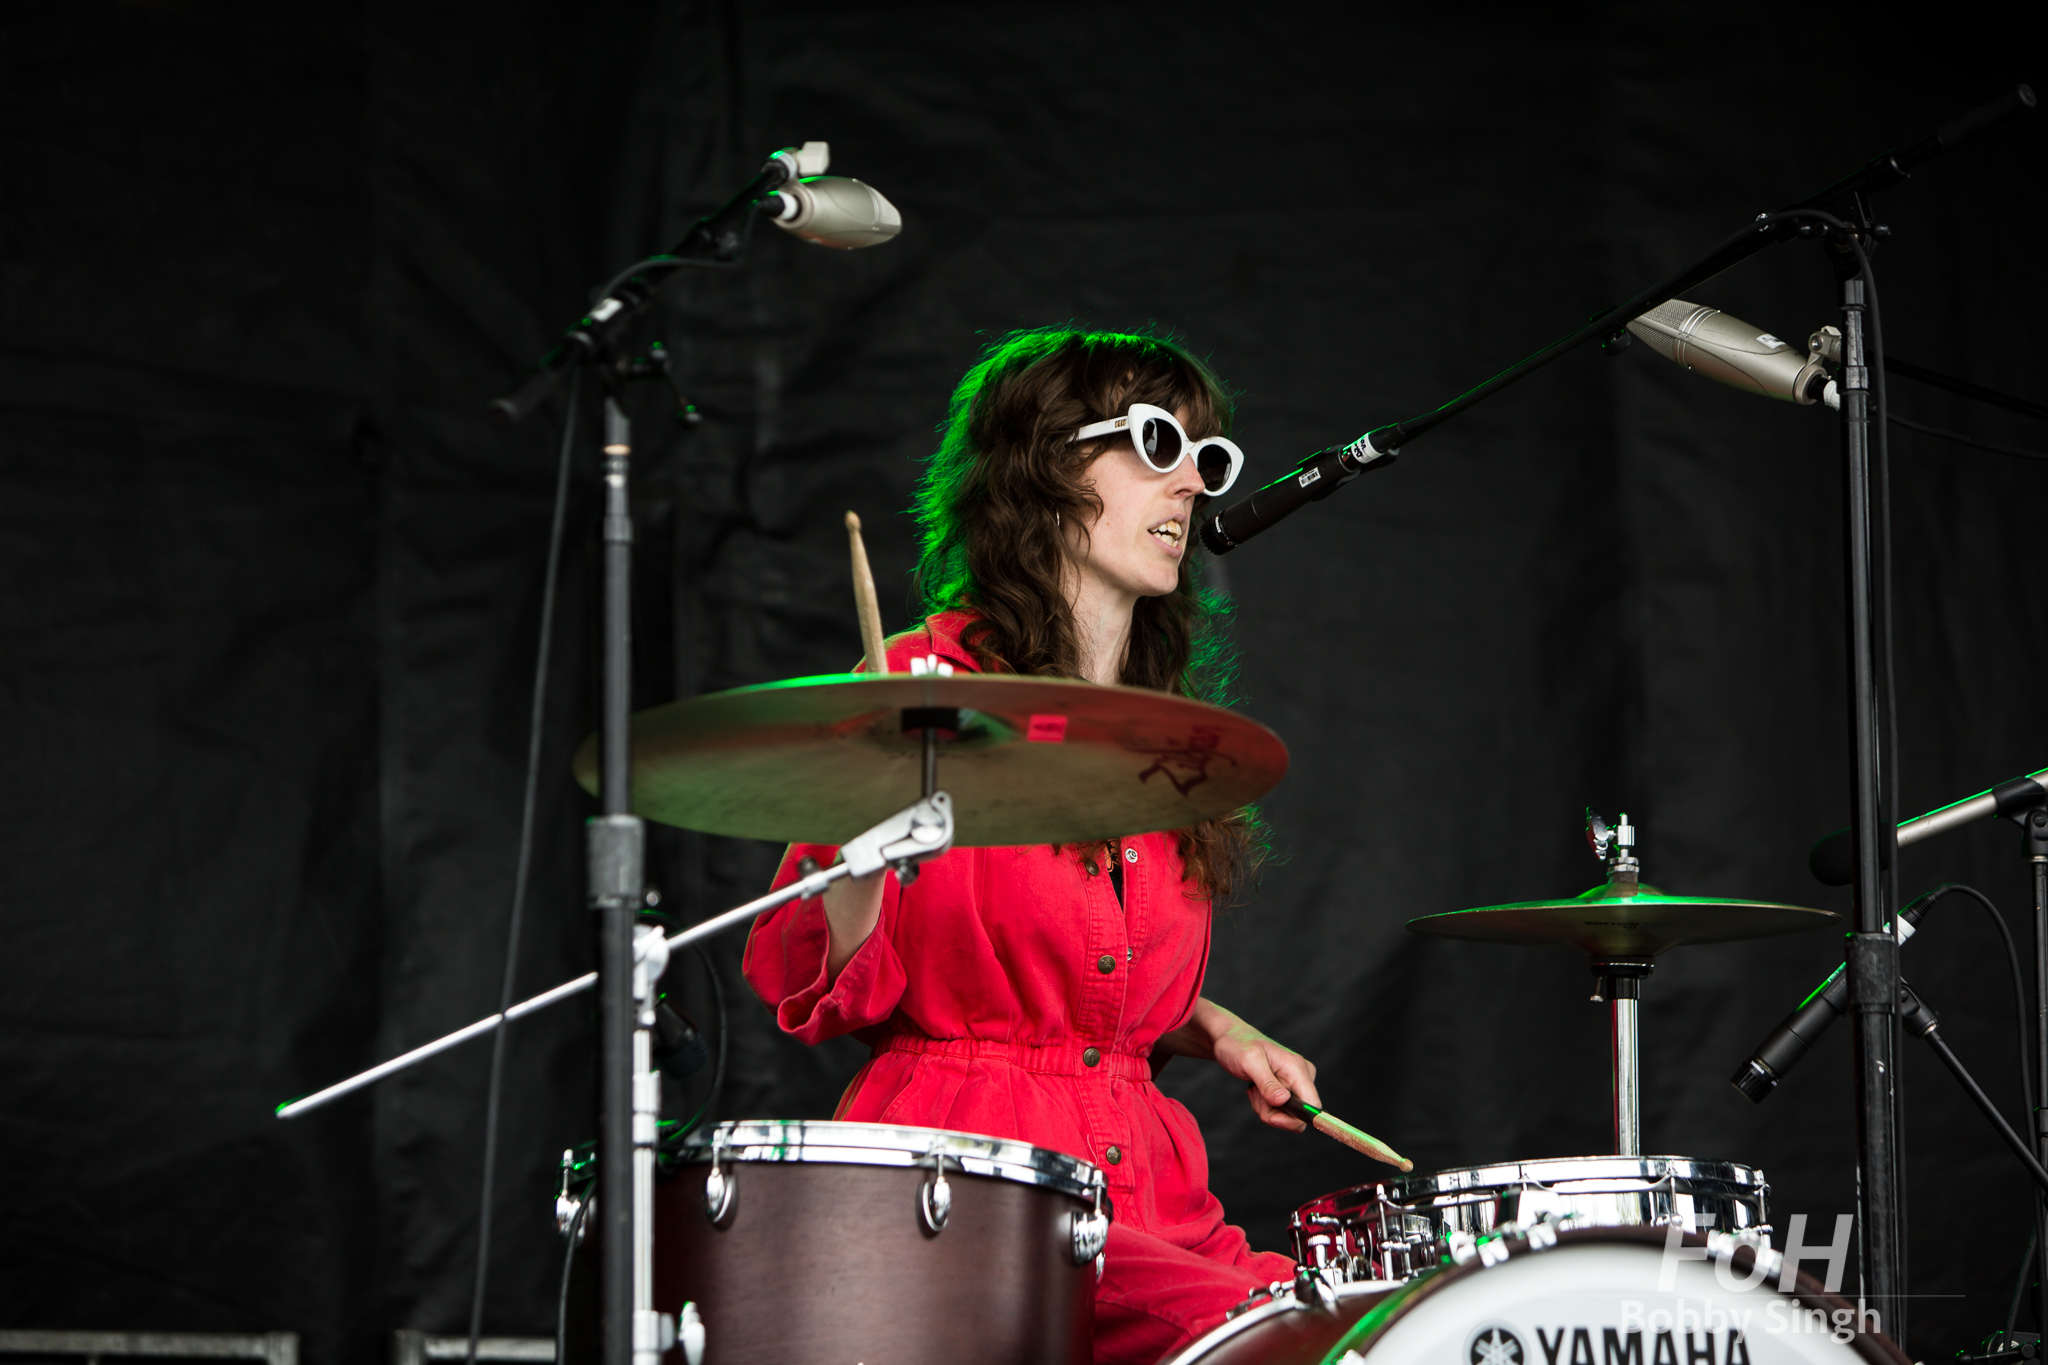 Drummer Jen Twynn Payne of The Courtneys performs at the CBC Music Fest in Toronto, CANADA.